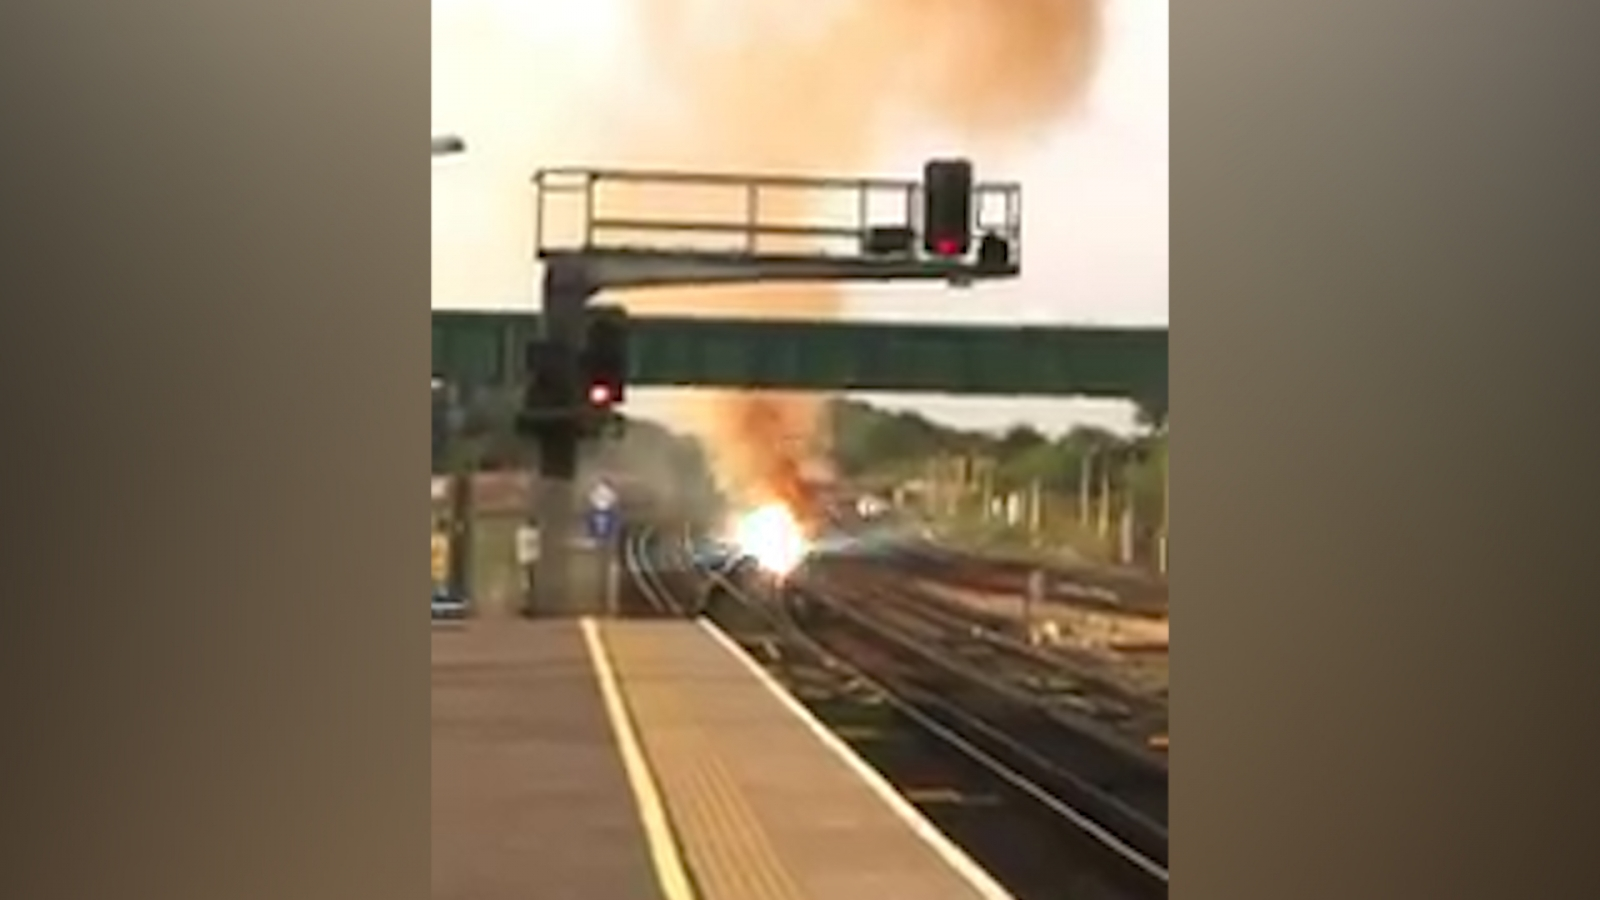 Fire on track at gatwick